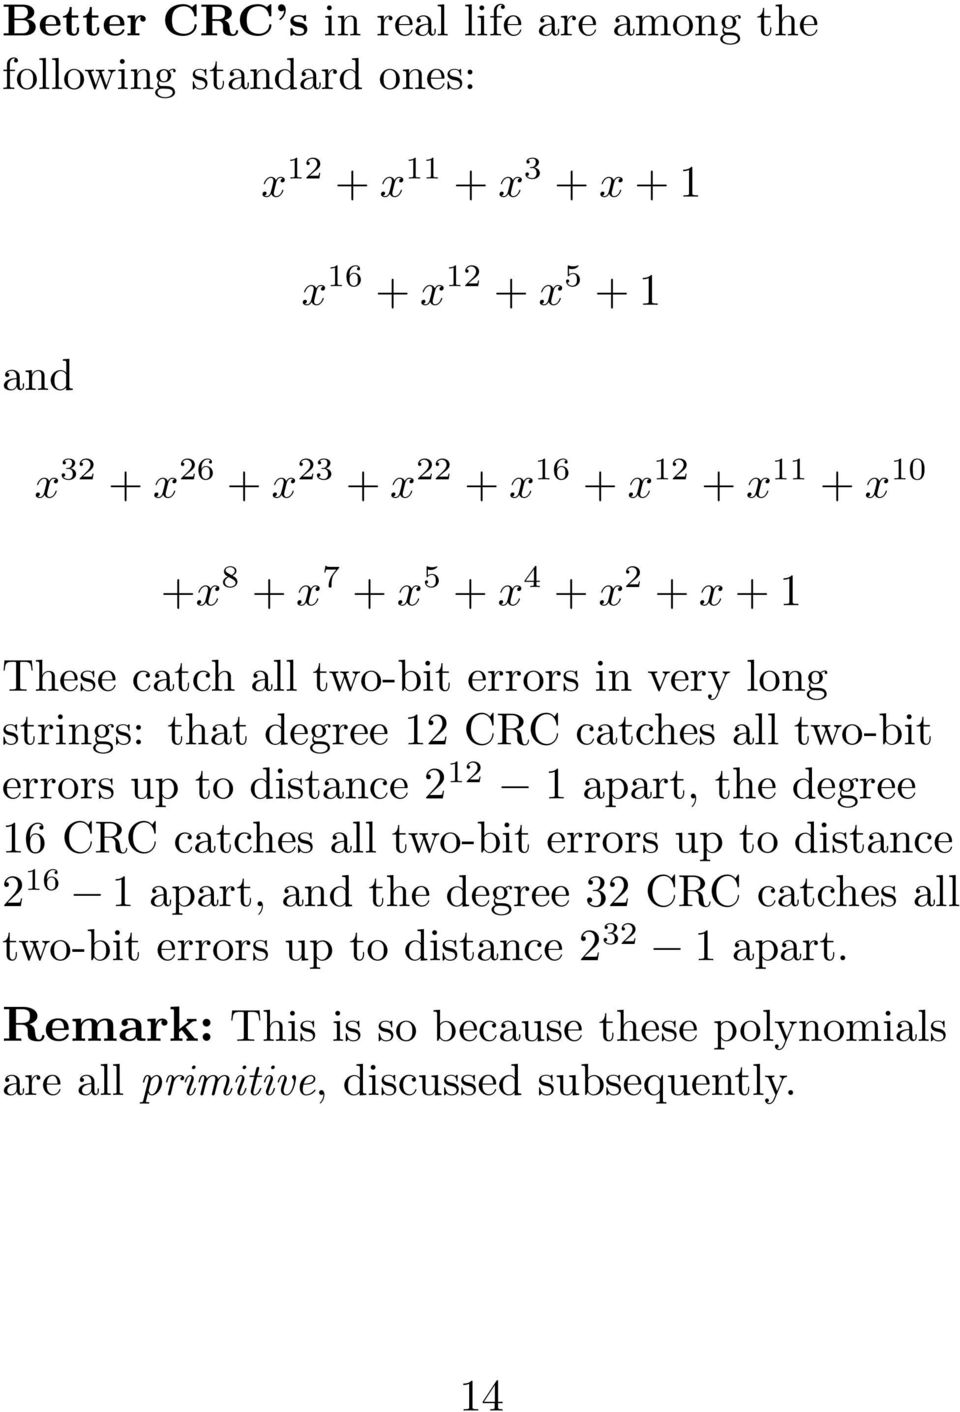 all two-bit errors up to distance 2 12 1 apart, the degree 16 CRC catches all two-bit errors up to distance 2 16 1 apart, and the degree 32 CRC